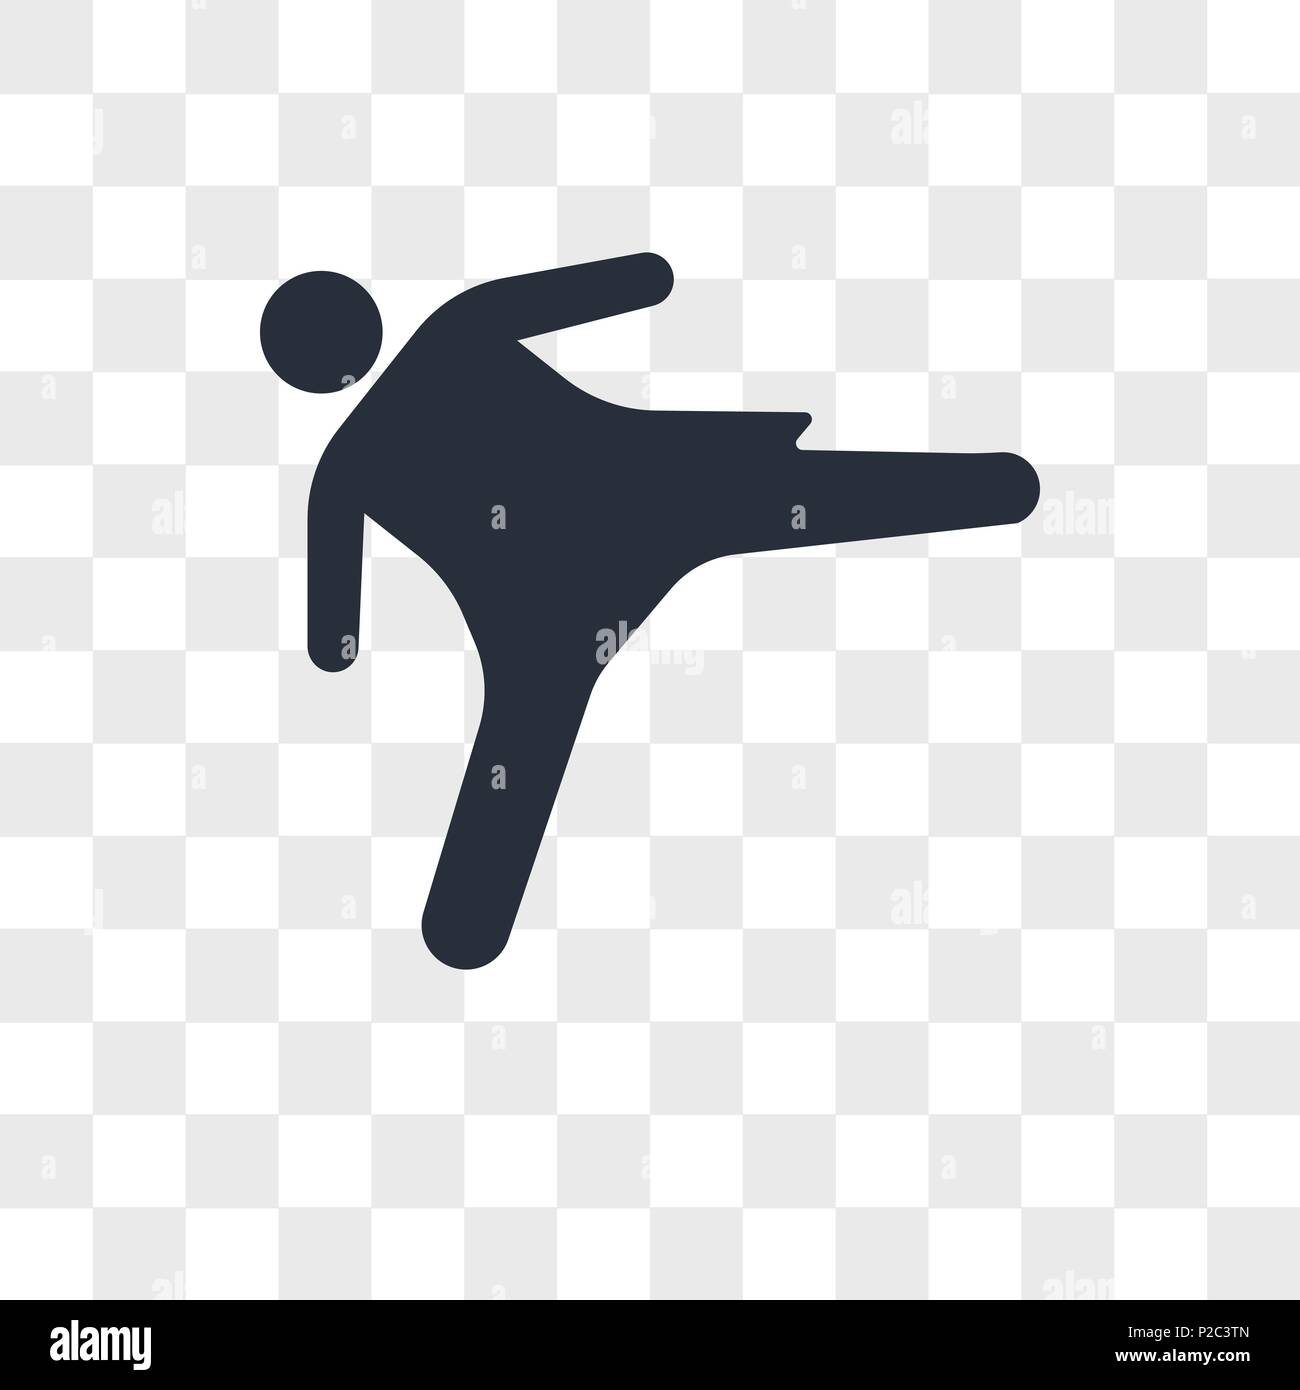 Girl kicking vector icon isolated on transparent background, Girl kicking logo concept - Stock Image